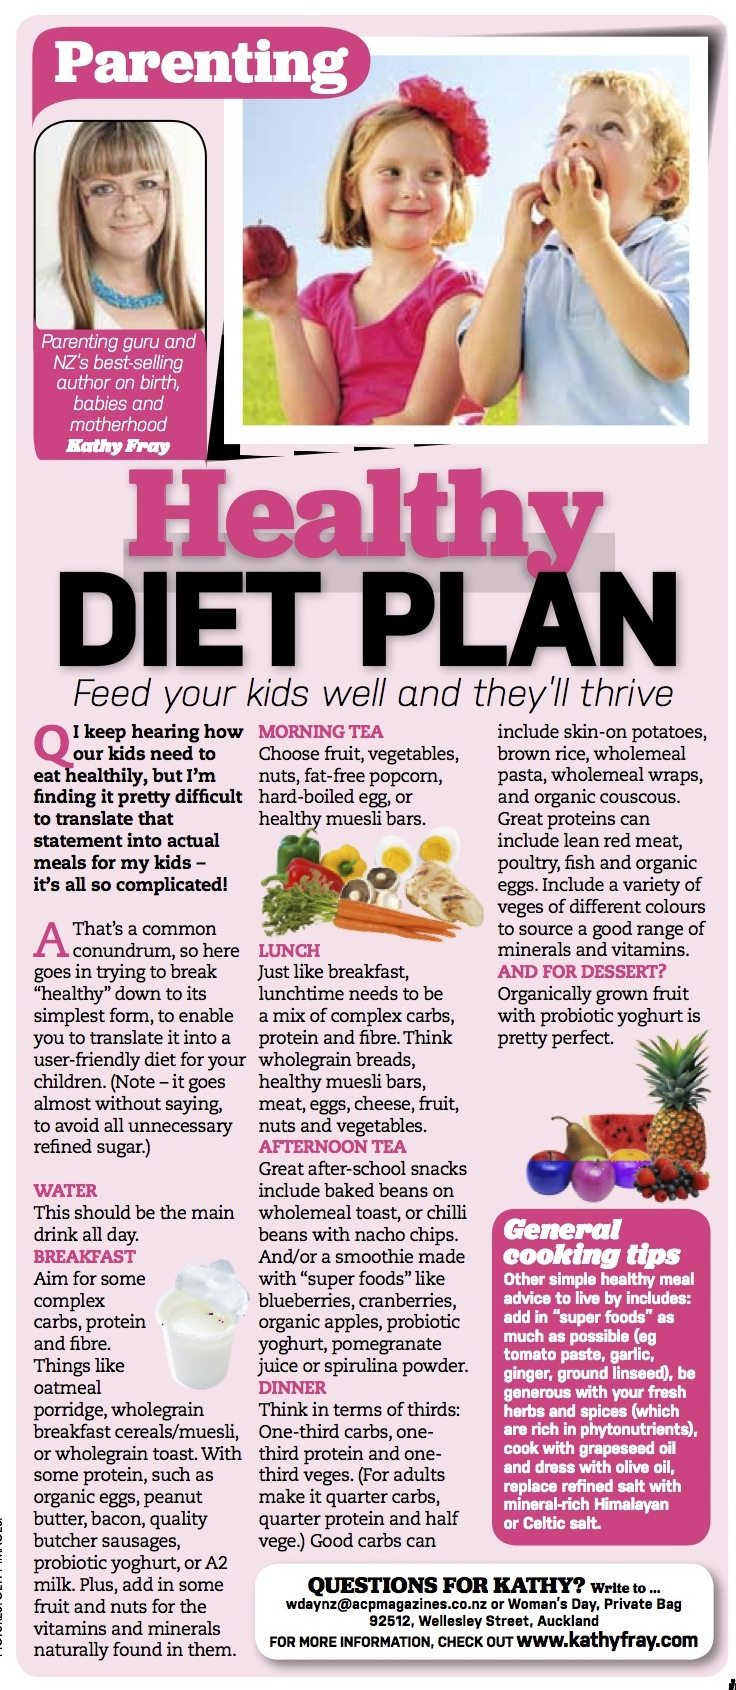 Healthy diet plan